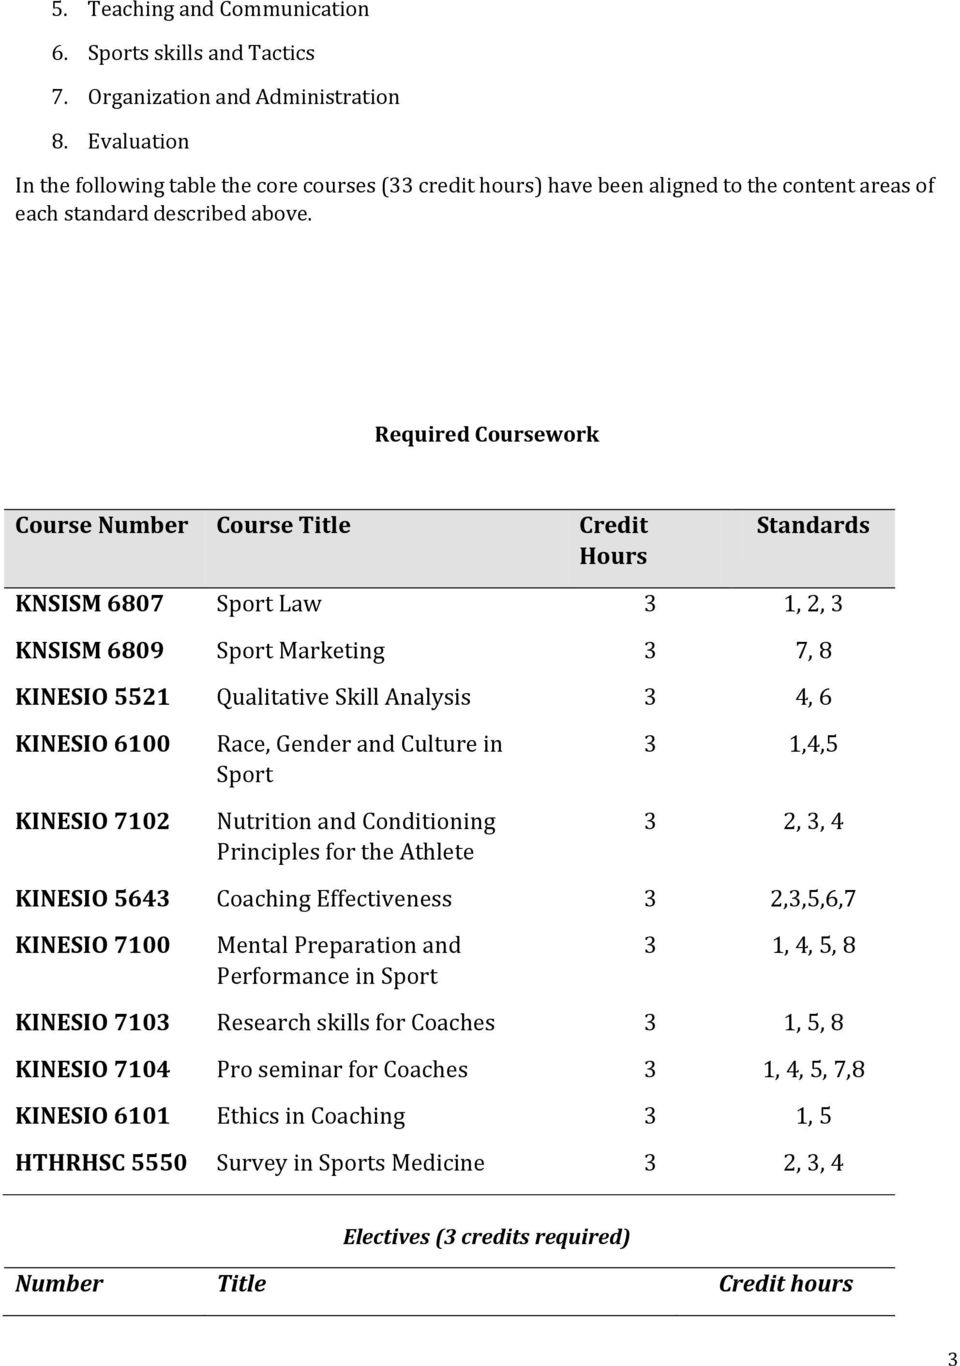 Required Coursework Course Number Course Title Credit Hours Standards KNSISM 6807 Sport Law 3 1, 2, 3 KNSISM 6809 Sport Marketing 3 7, 8 KINESIO 5521 Qualitative Skill Analysis 3 4, 6 KINESIO 6100